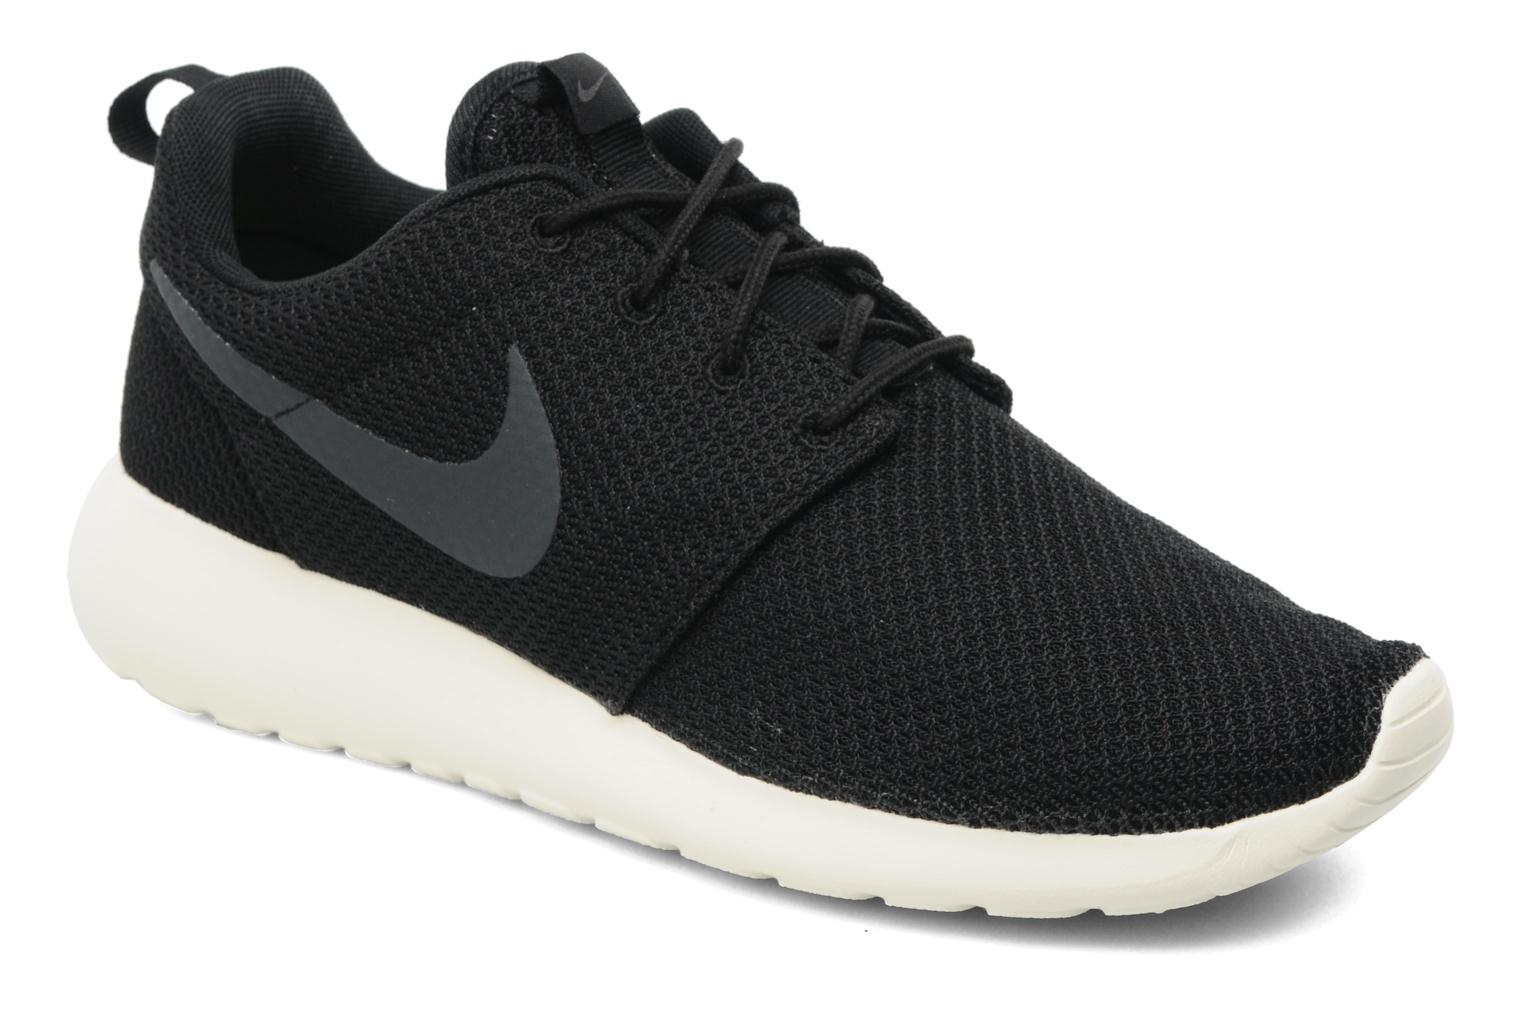 Nike Roshe One Black-Anthracite-Sail